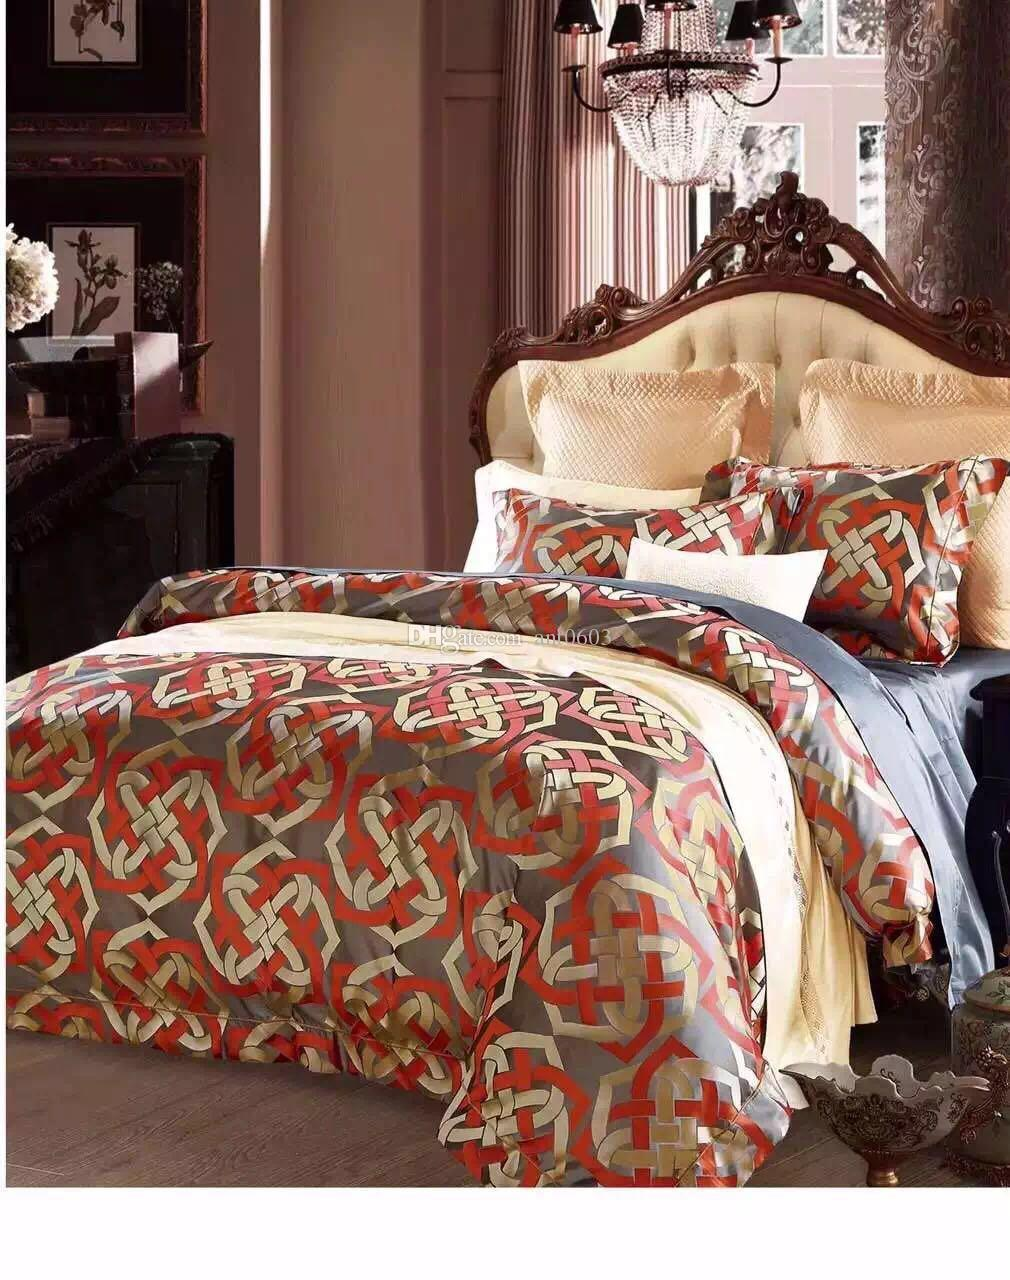 2018 Dubai Hotel Dedicated To 100 Supima Stripe Quilt Cover Bed Linen  Bedclothes Bed Set Bed Sheet Duvet Cover Pillowcases From Ant0603, $309.55  | Dhgate.